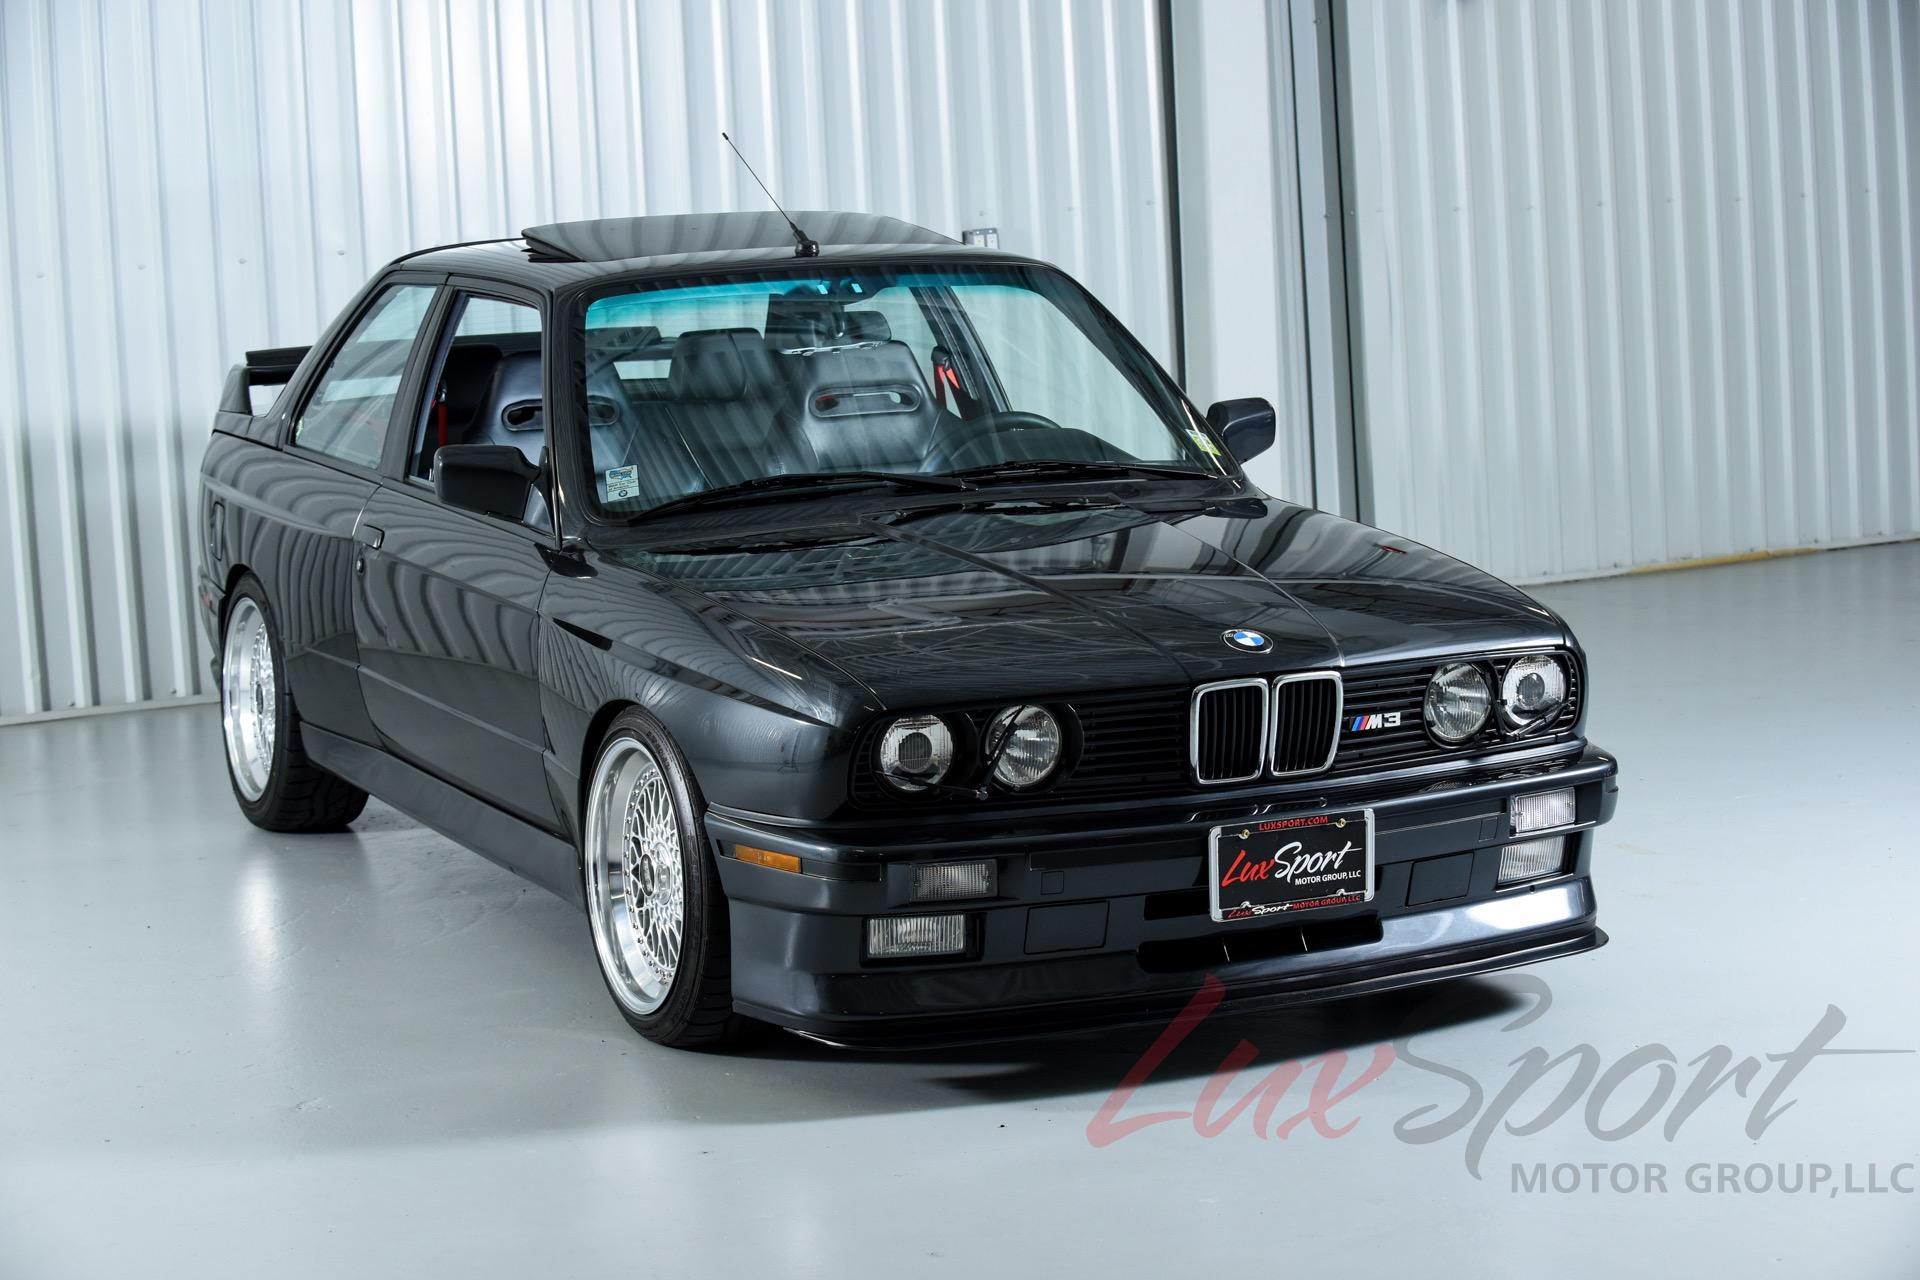 1988 bmw e30 m3 coupe stock 1988150a for sale near new hyde park ny ny bmw dealer. Black Bedroom Furniture Sets. Home Design Ideas